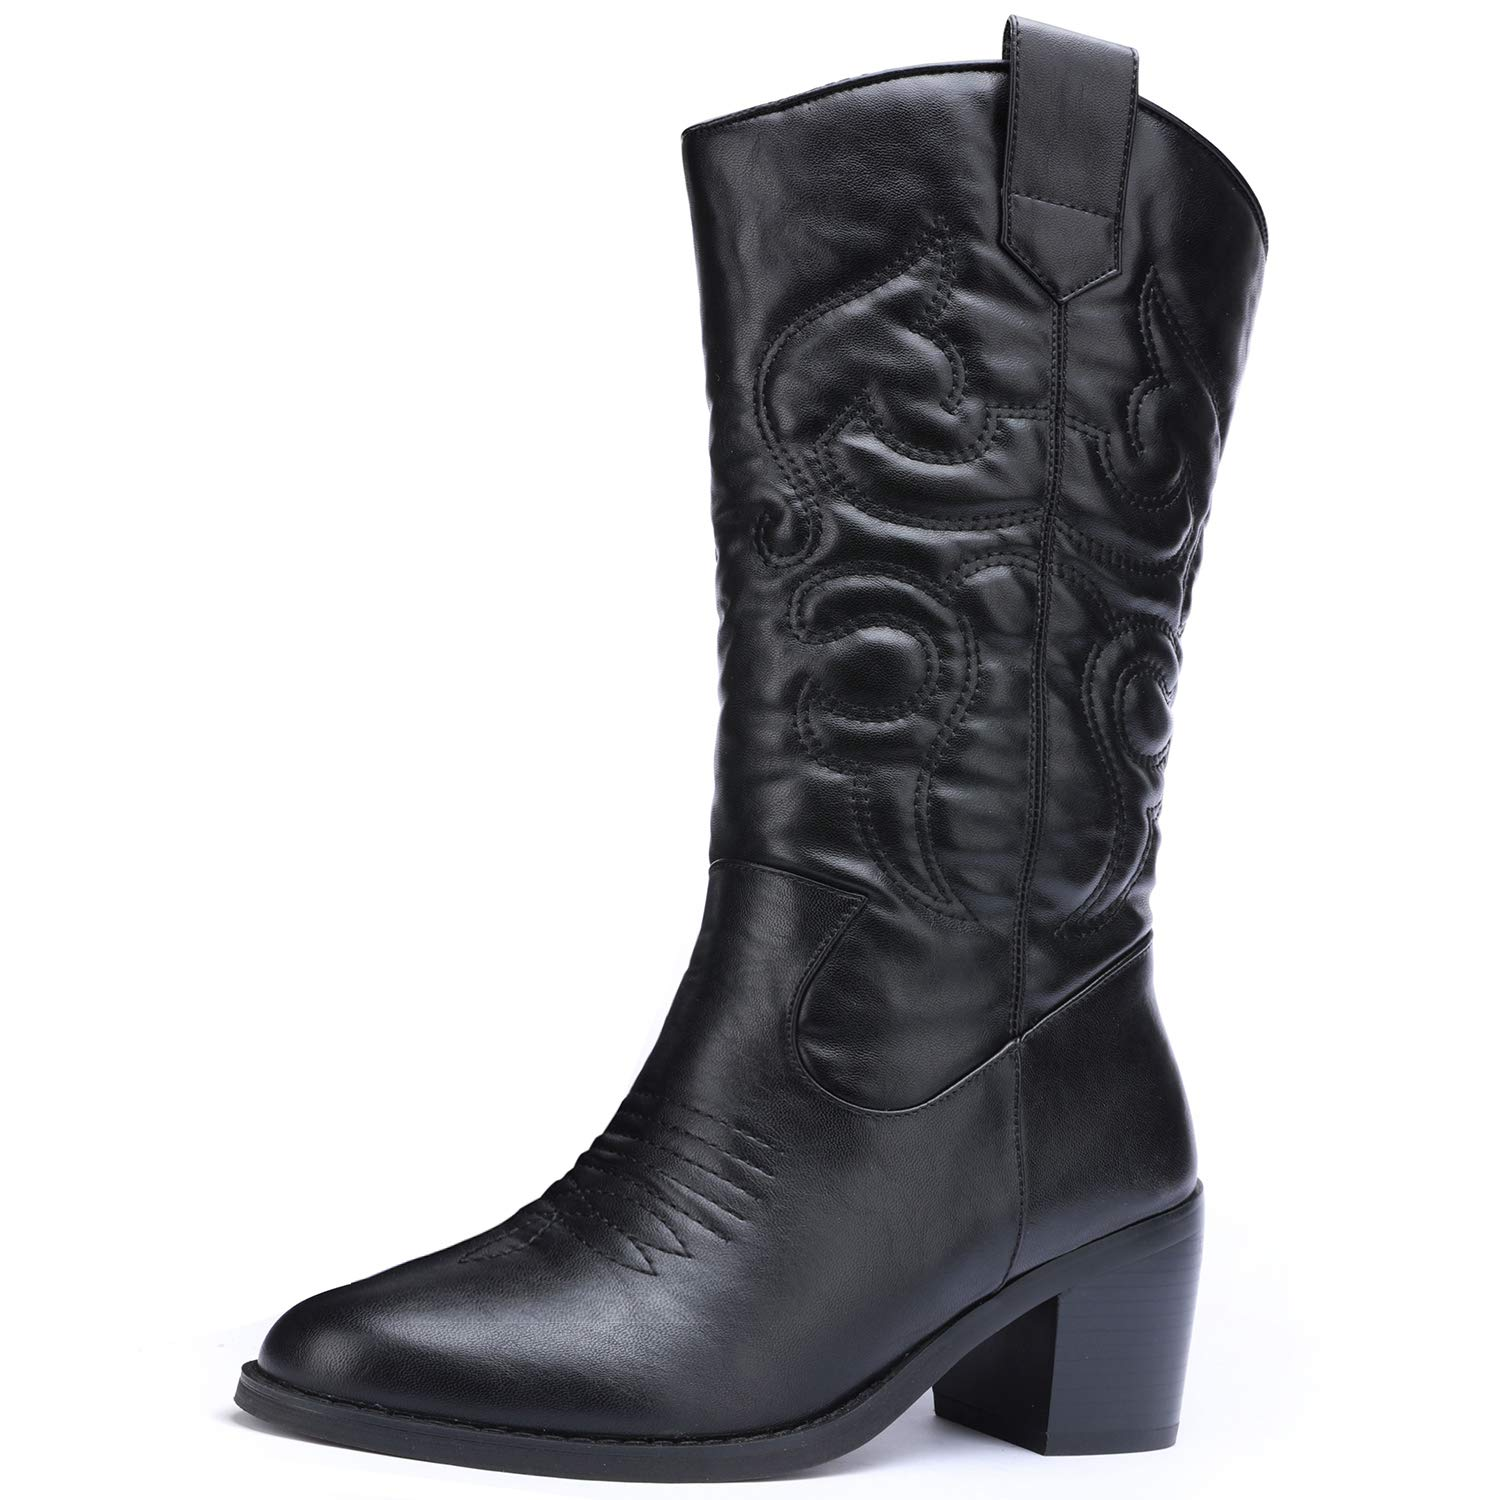 Black Odema Womens Wide Toe Cowboy Western Tabs Boots Low Heel Pull On Mid Calf Bootie